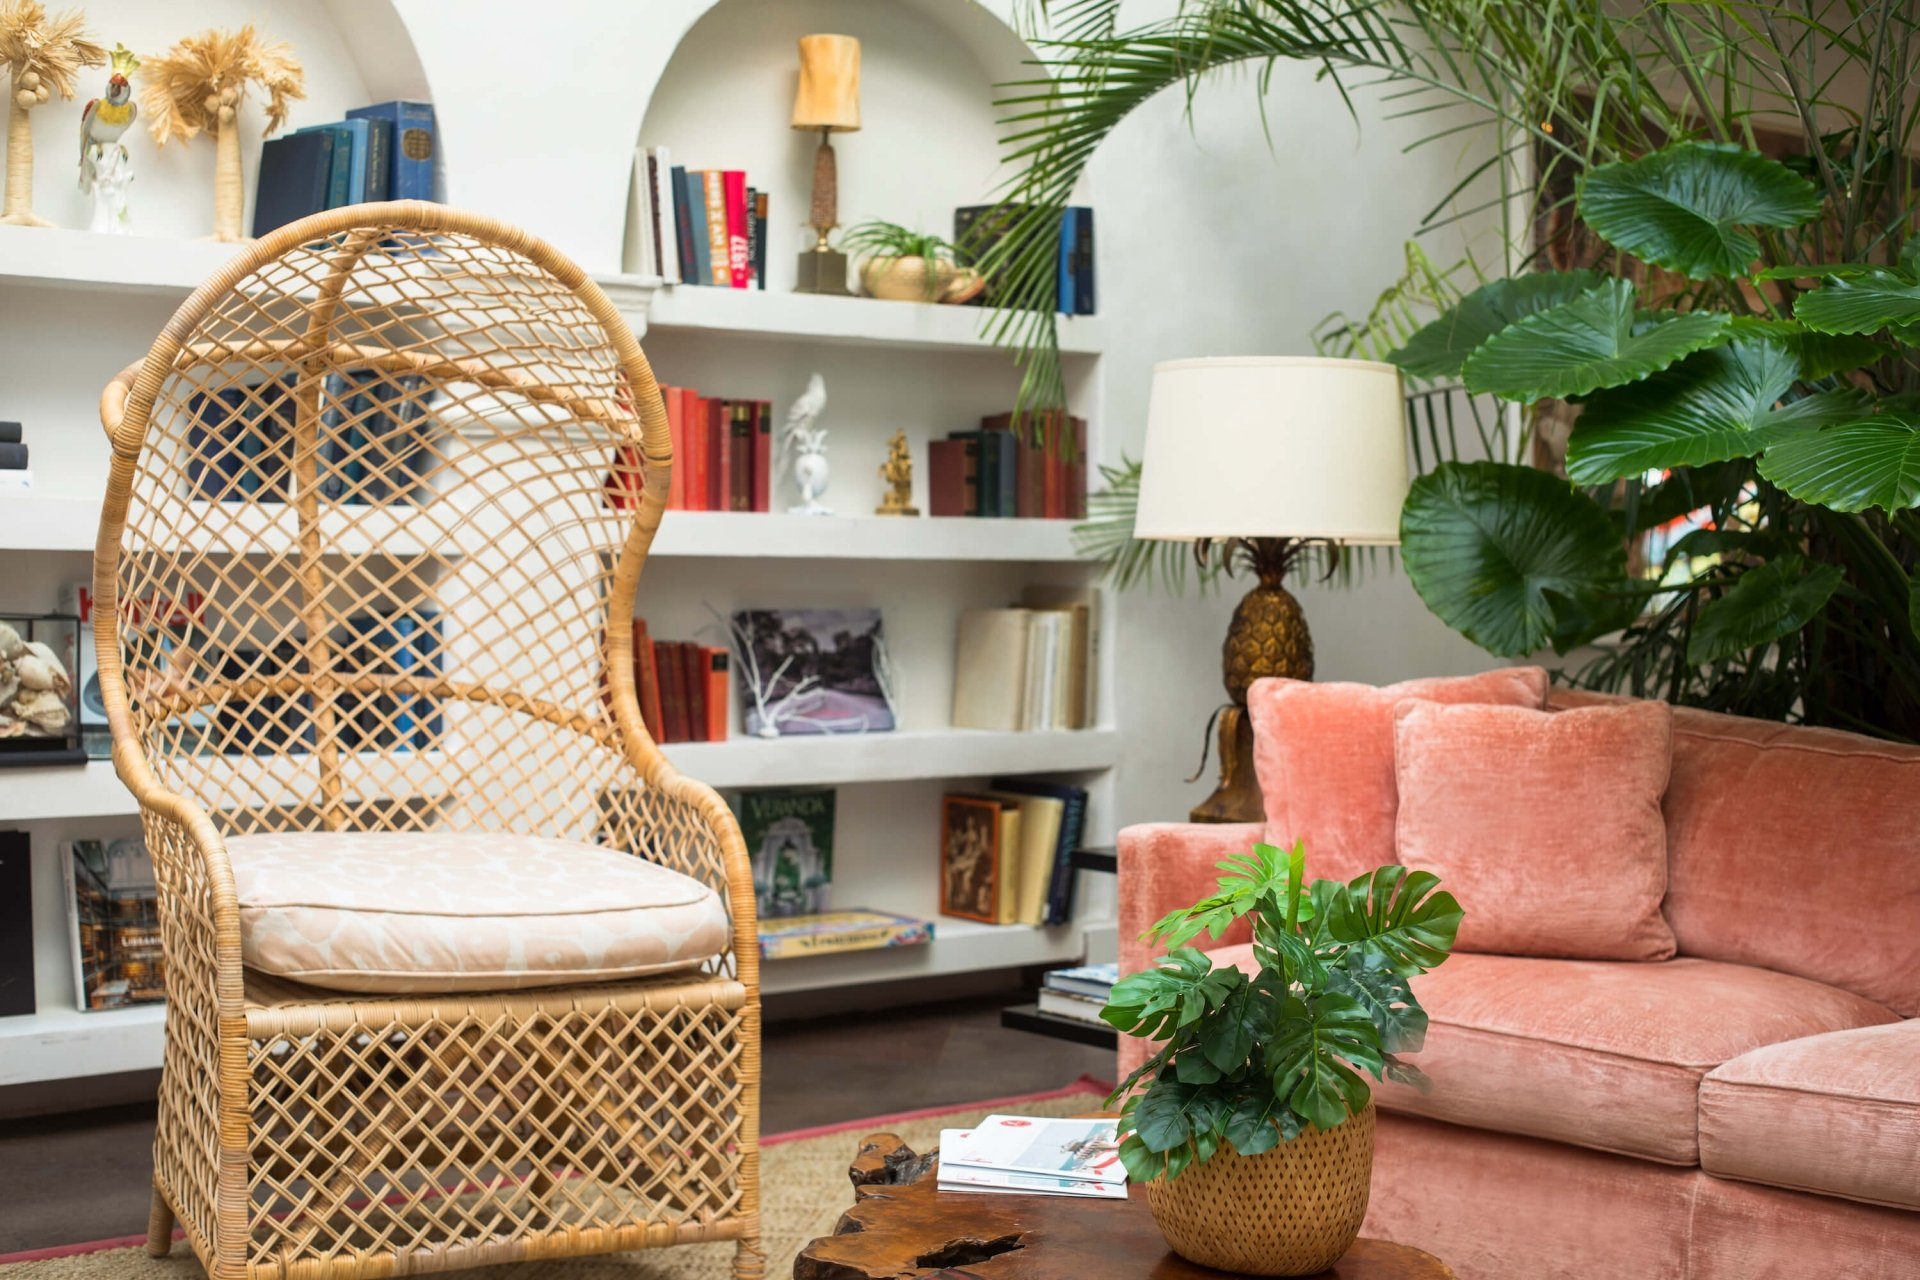 wicker chair and pink couch sit in front of with book shelves and plants